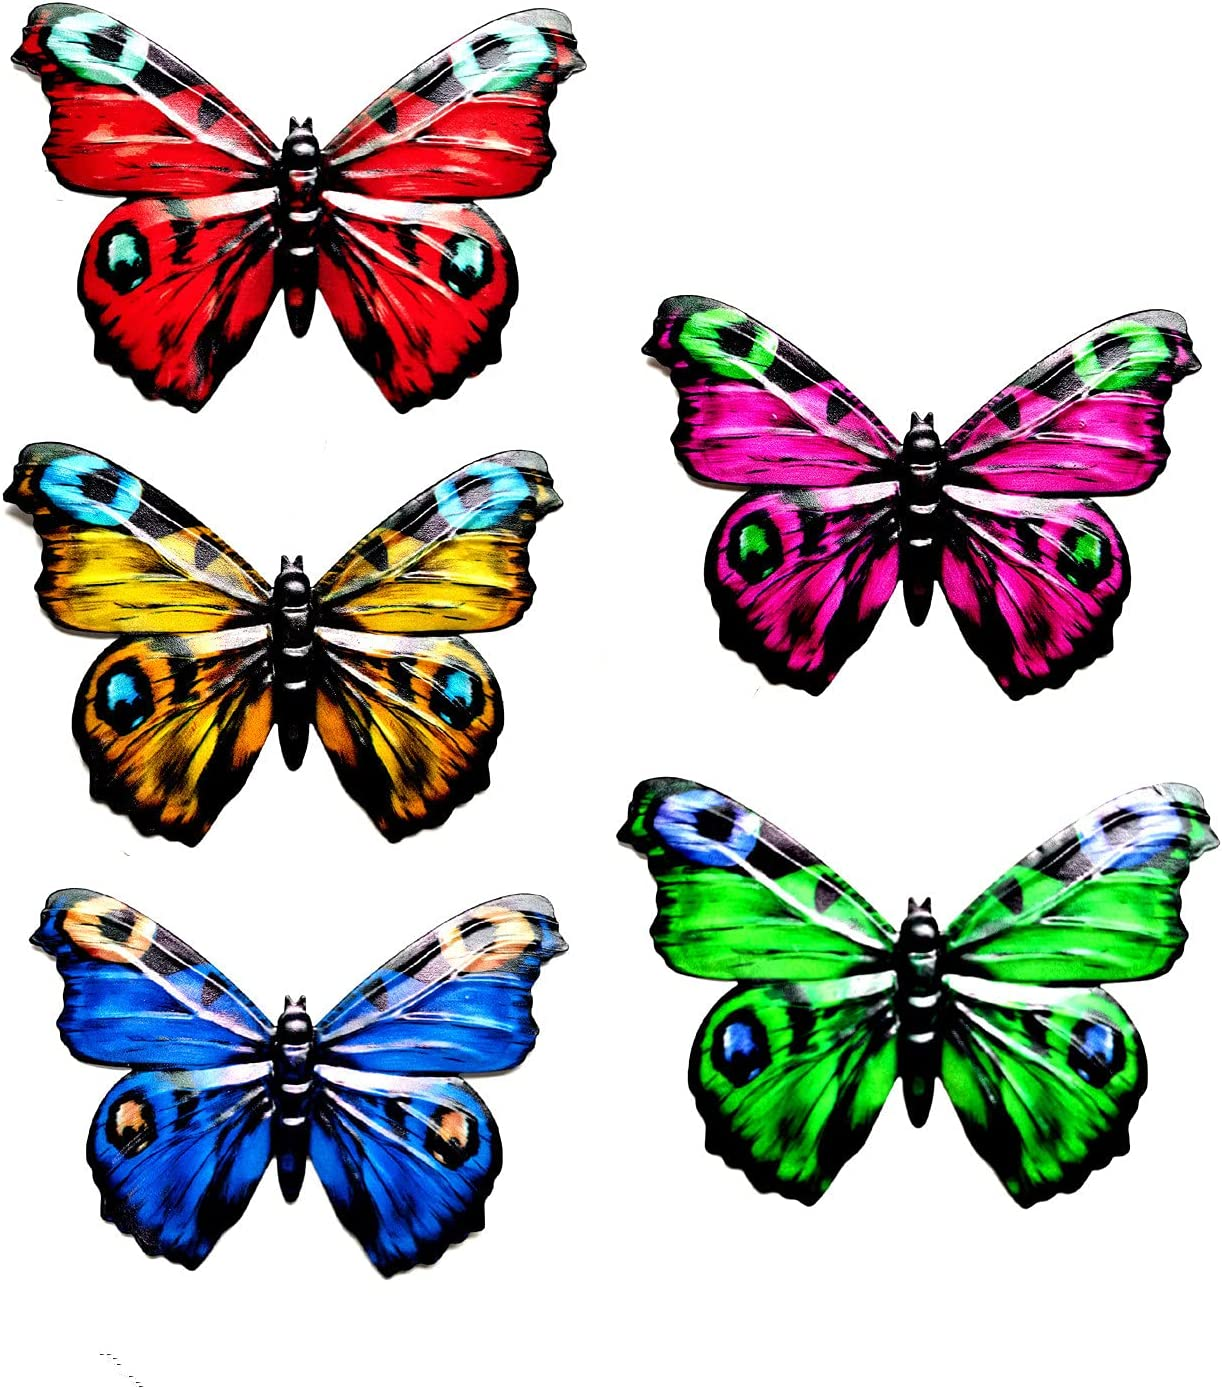 Metal Butterfly Outdoor Decor - 5 Pack Wall Art Decorations Hanging for Patio, Fence, Garden, Yard, Handmade Gift for Kids